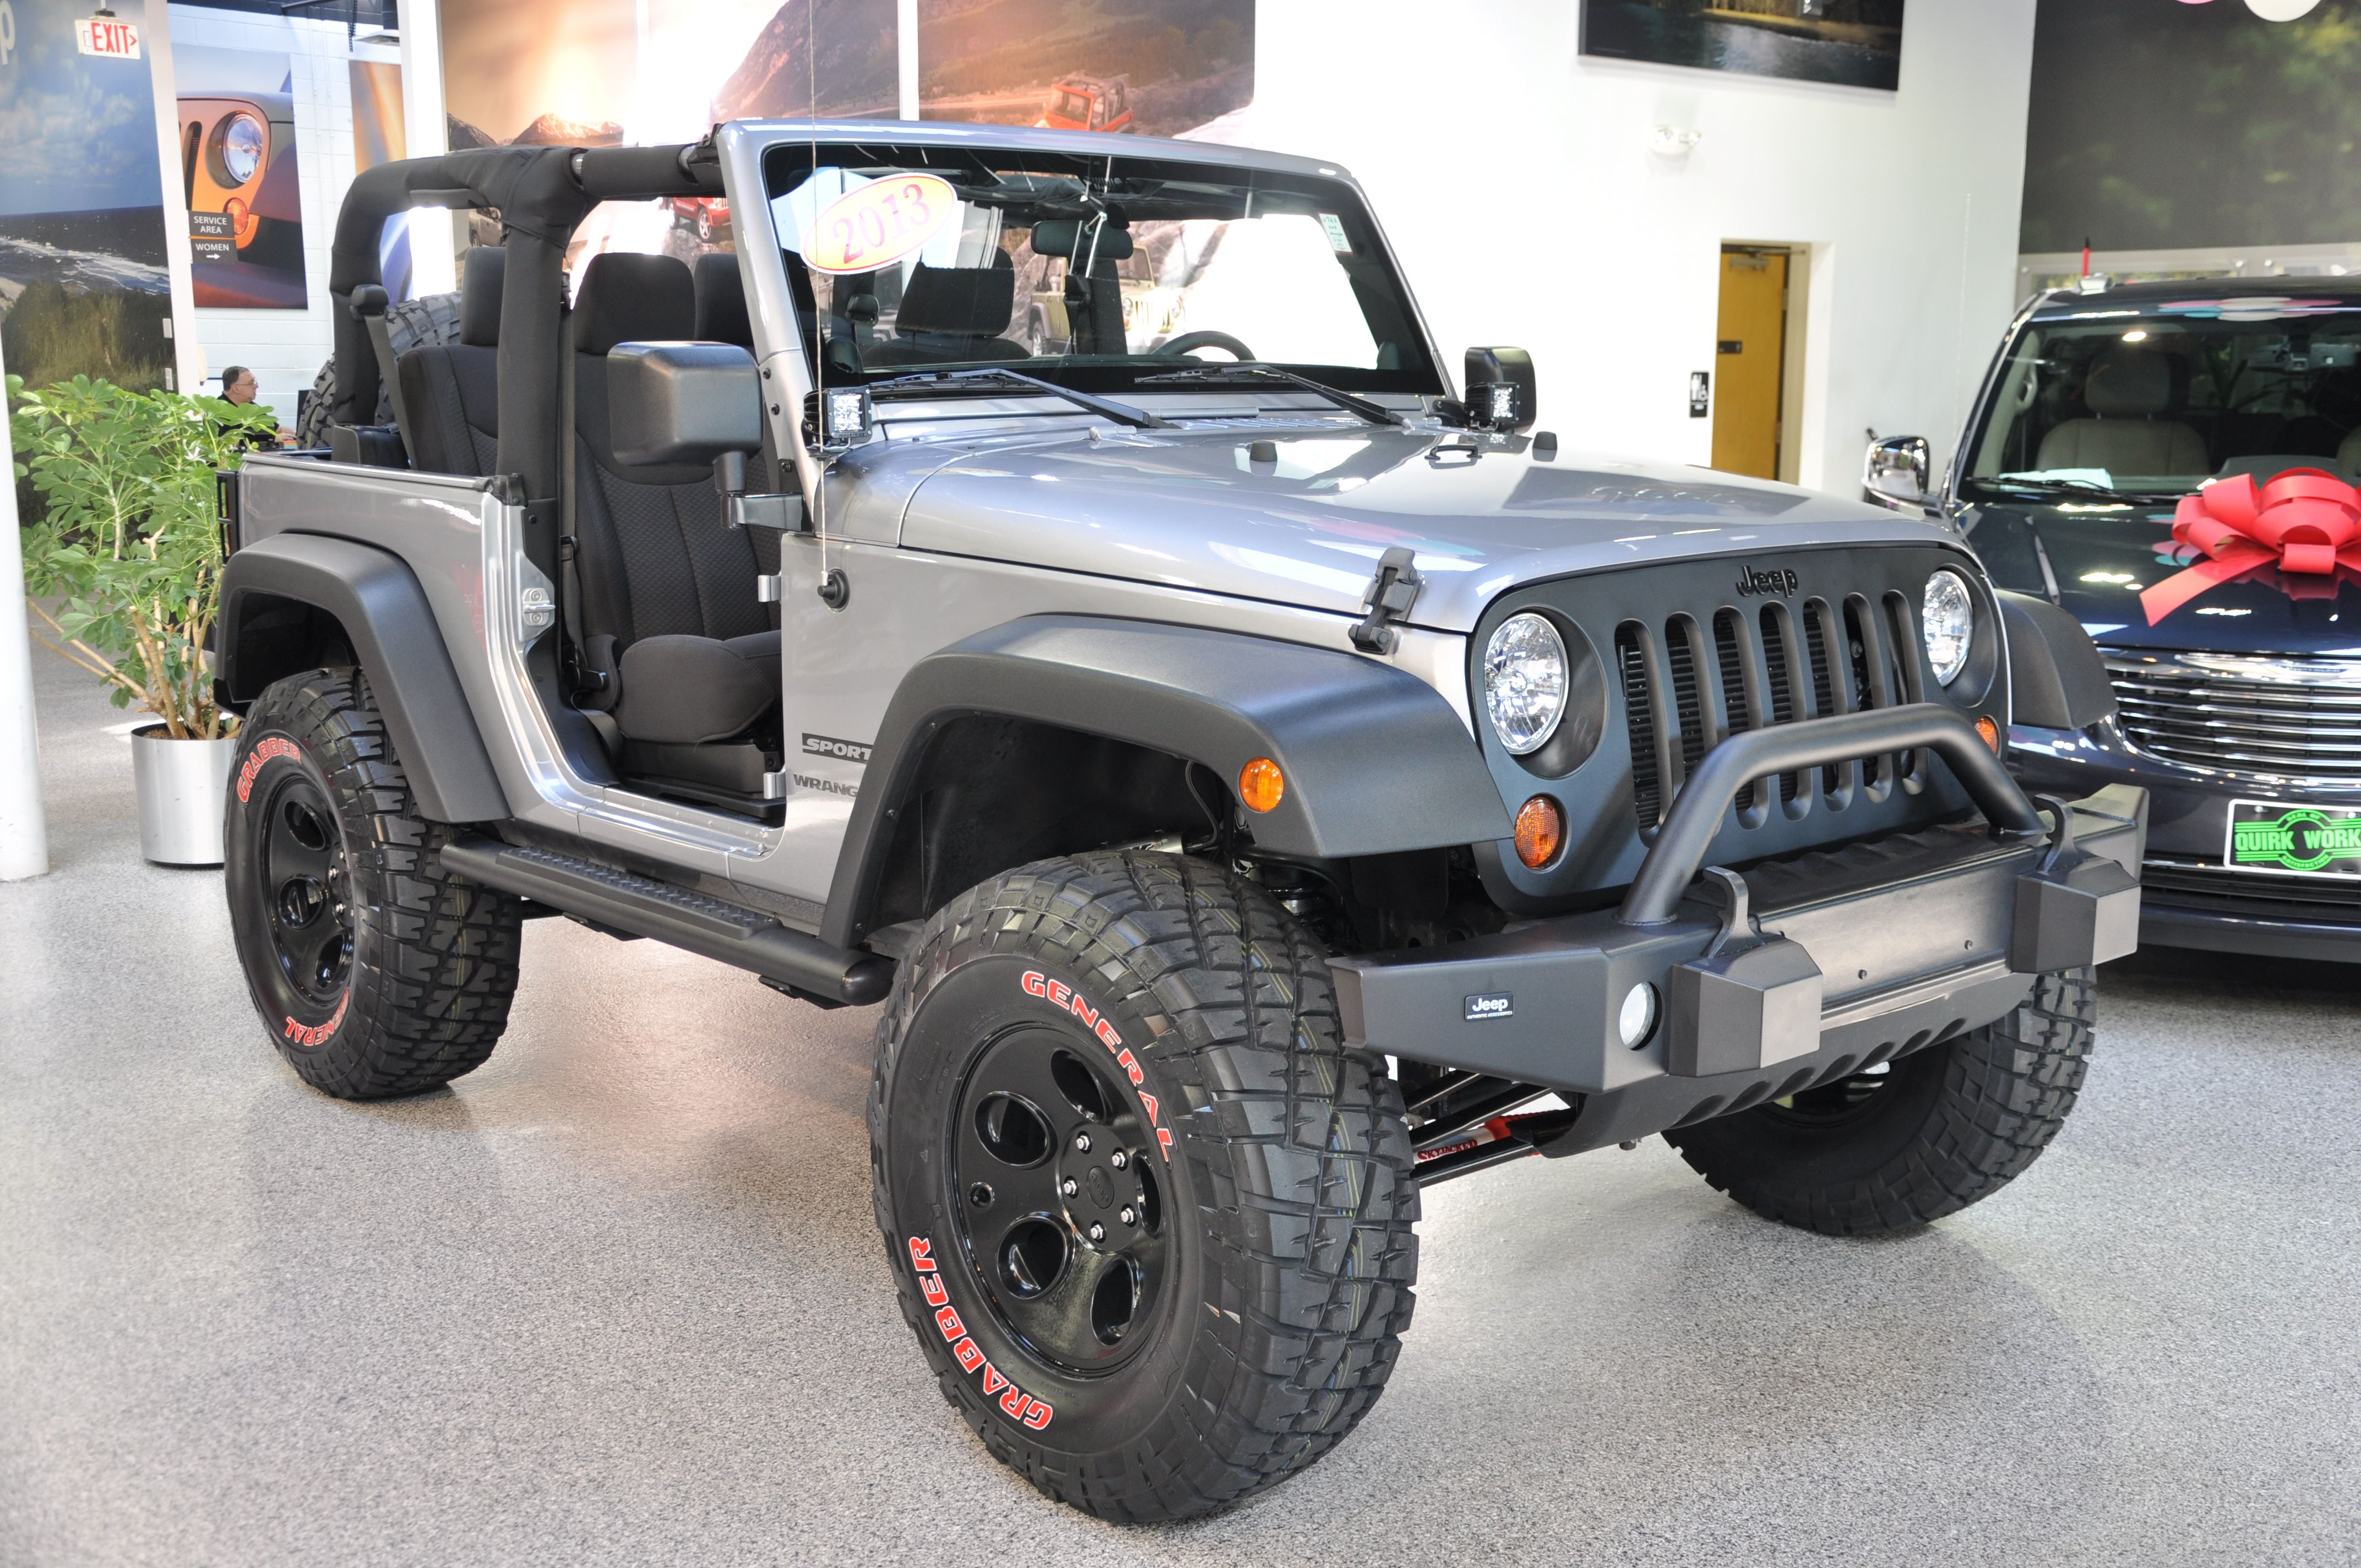 Custom jeep wrangler rear off road bumper from smitty built 3 lift 35 general grabber tires jeep board pinterest custom jeep and jeeps